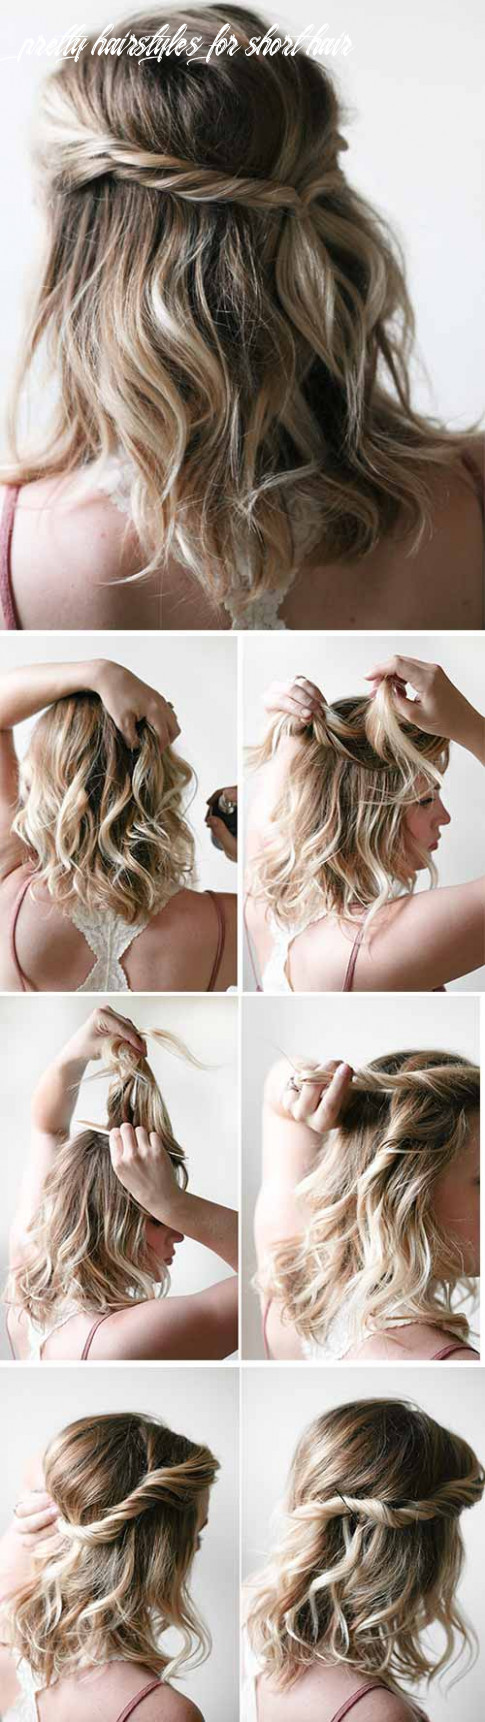 11 incredible diy short hairstyles a step by step guide pretty hairstyles for short hair